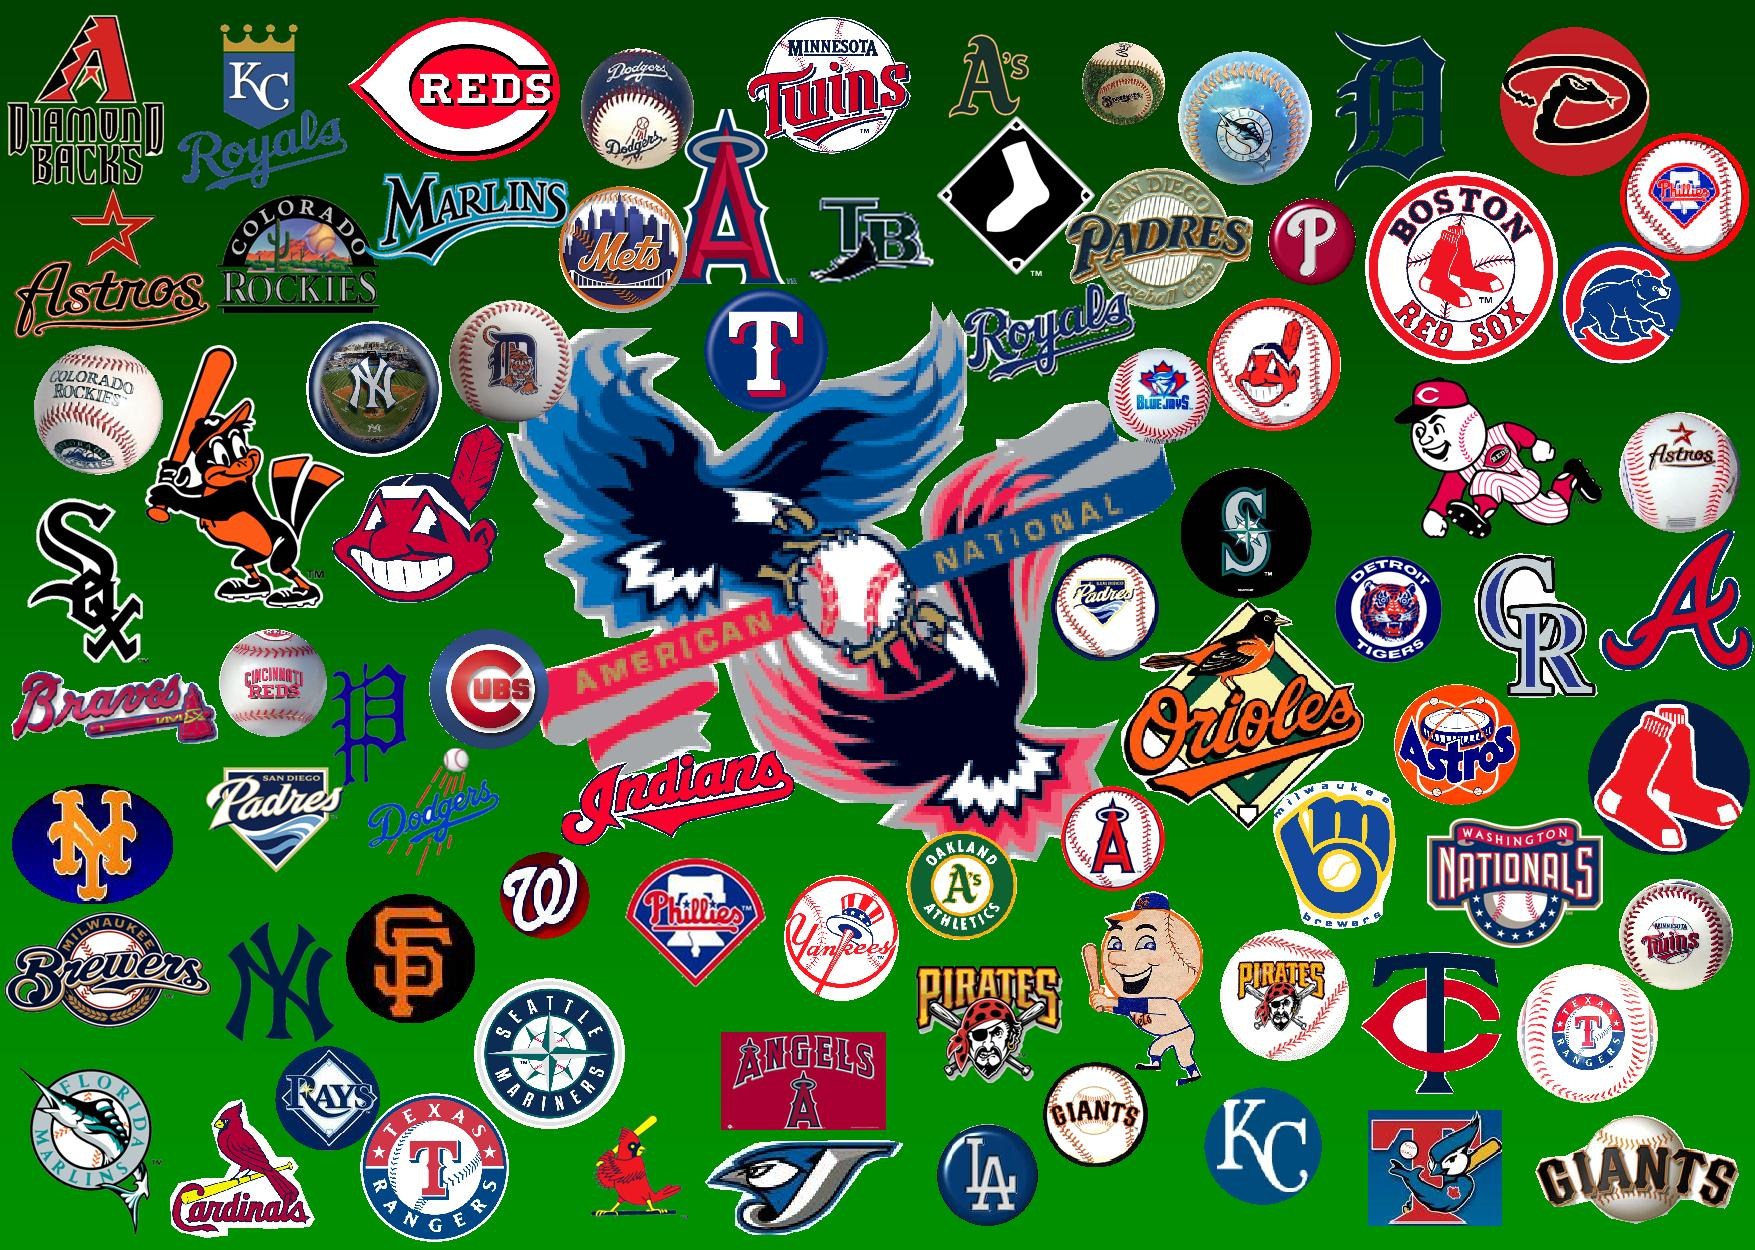 Free Download Mlb Desktop Wallpaper 1755x1250 For Your Desktop